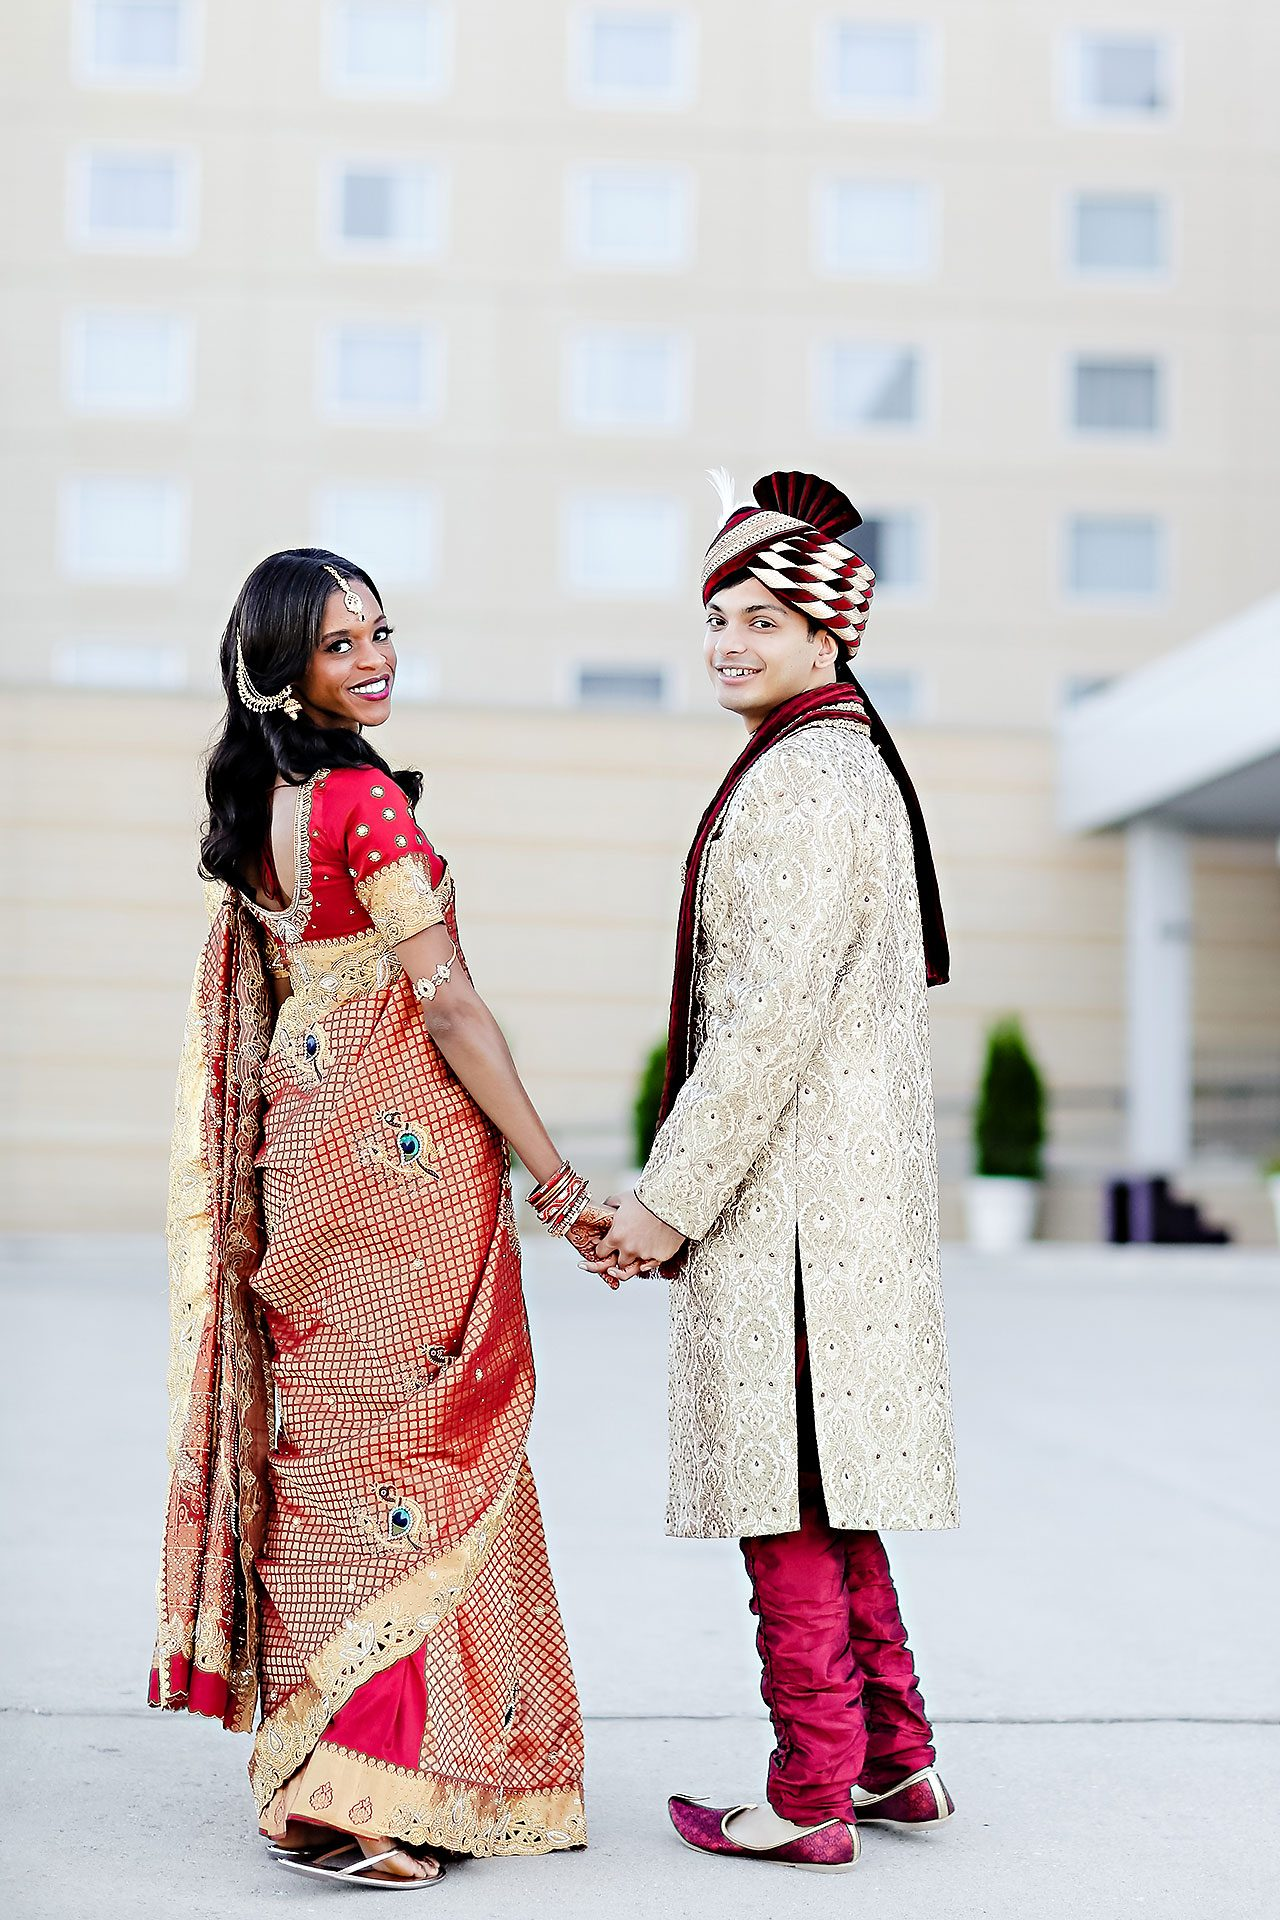 Joie Nikhil JW Marriott Indian Wedding 052